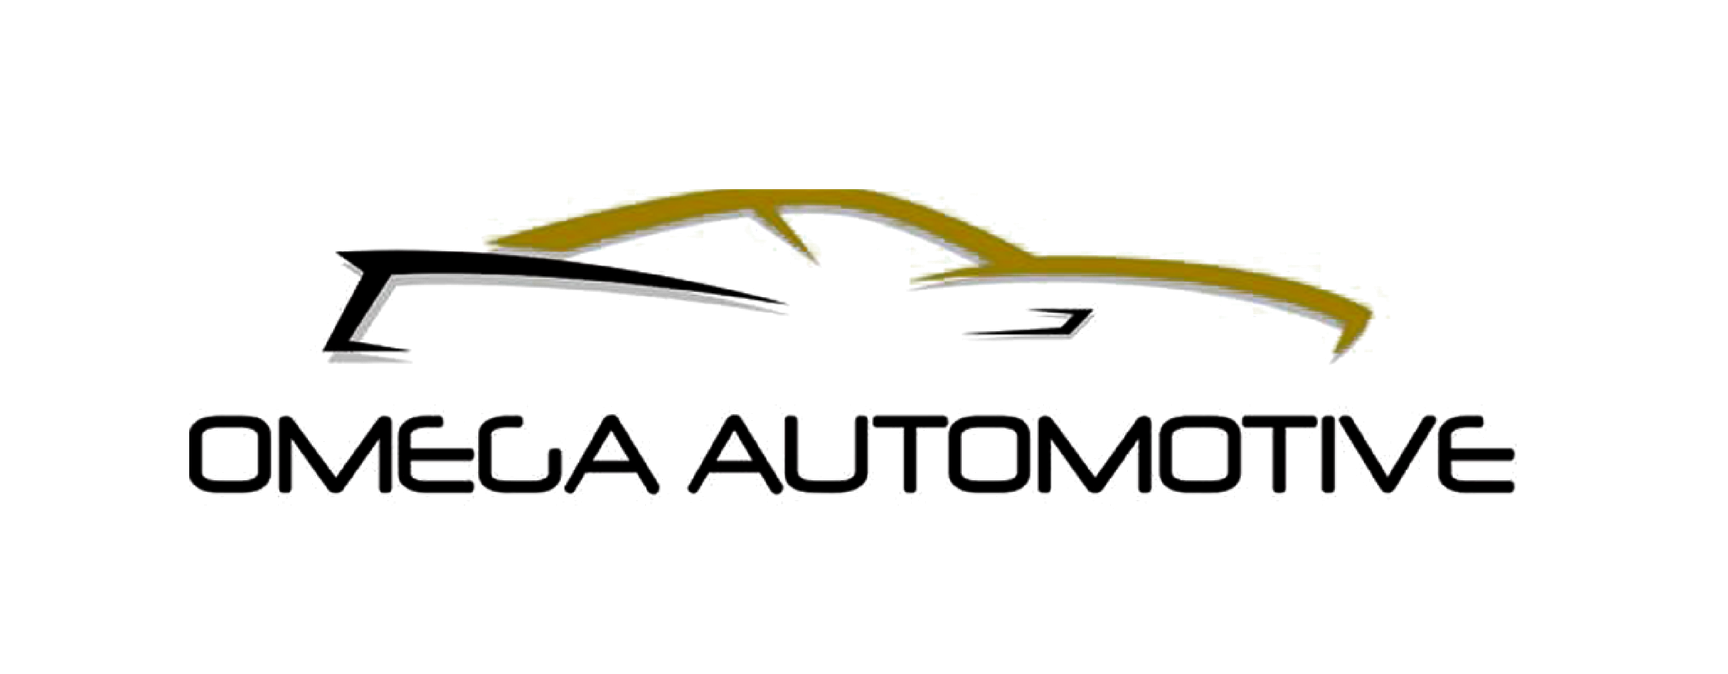 Omega Automotive Group